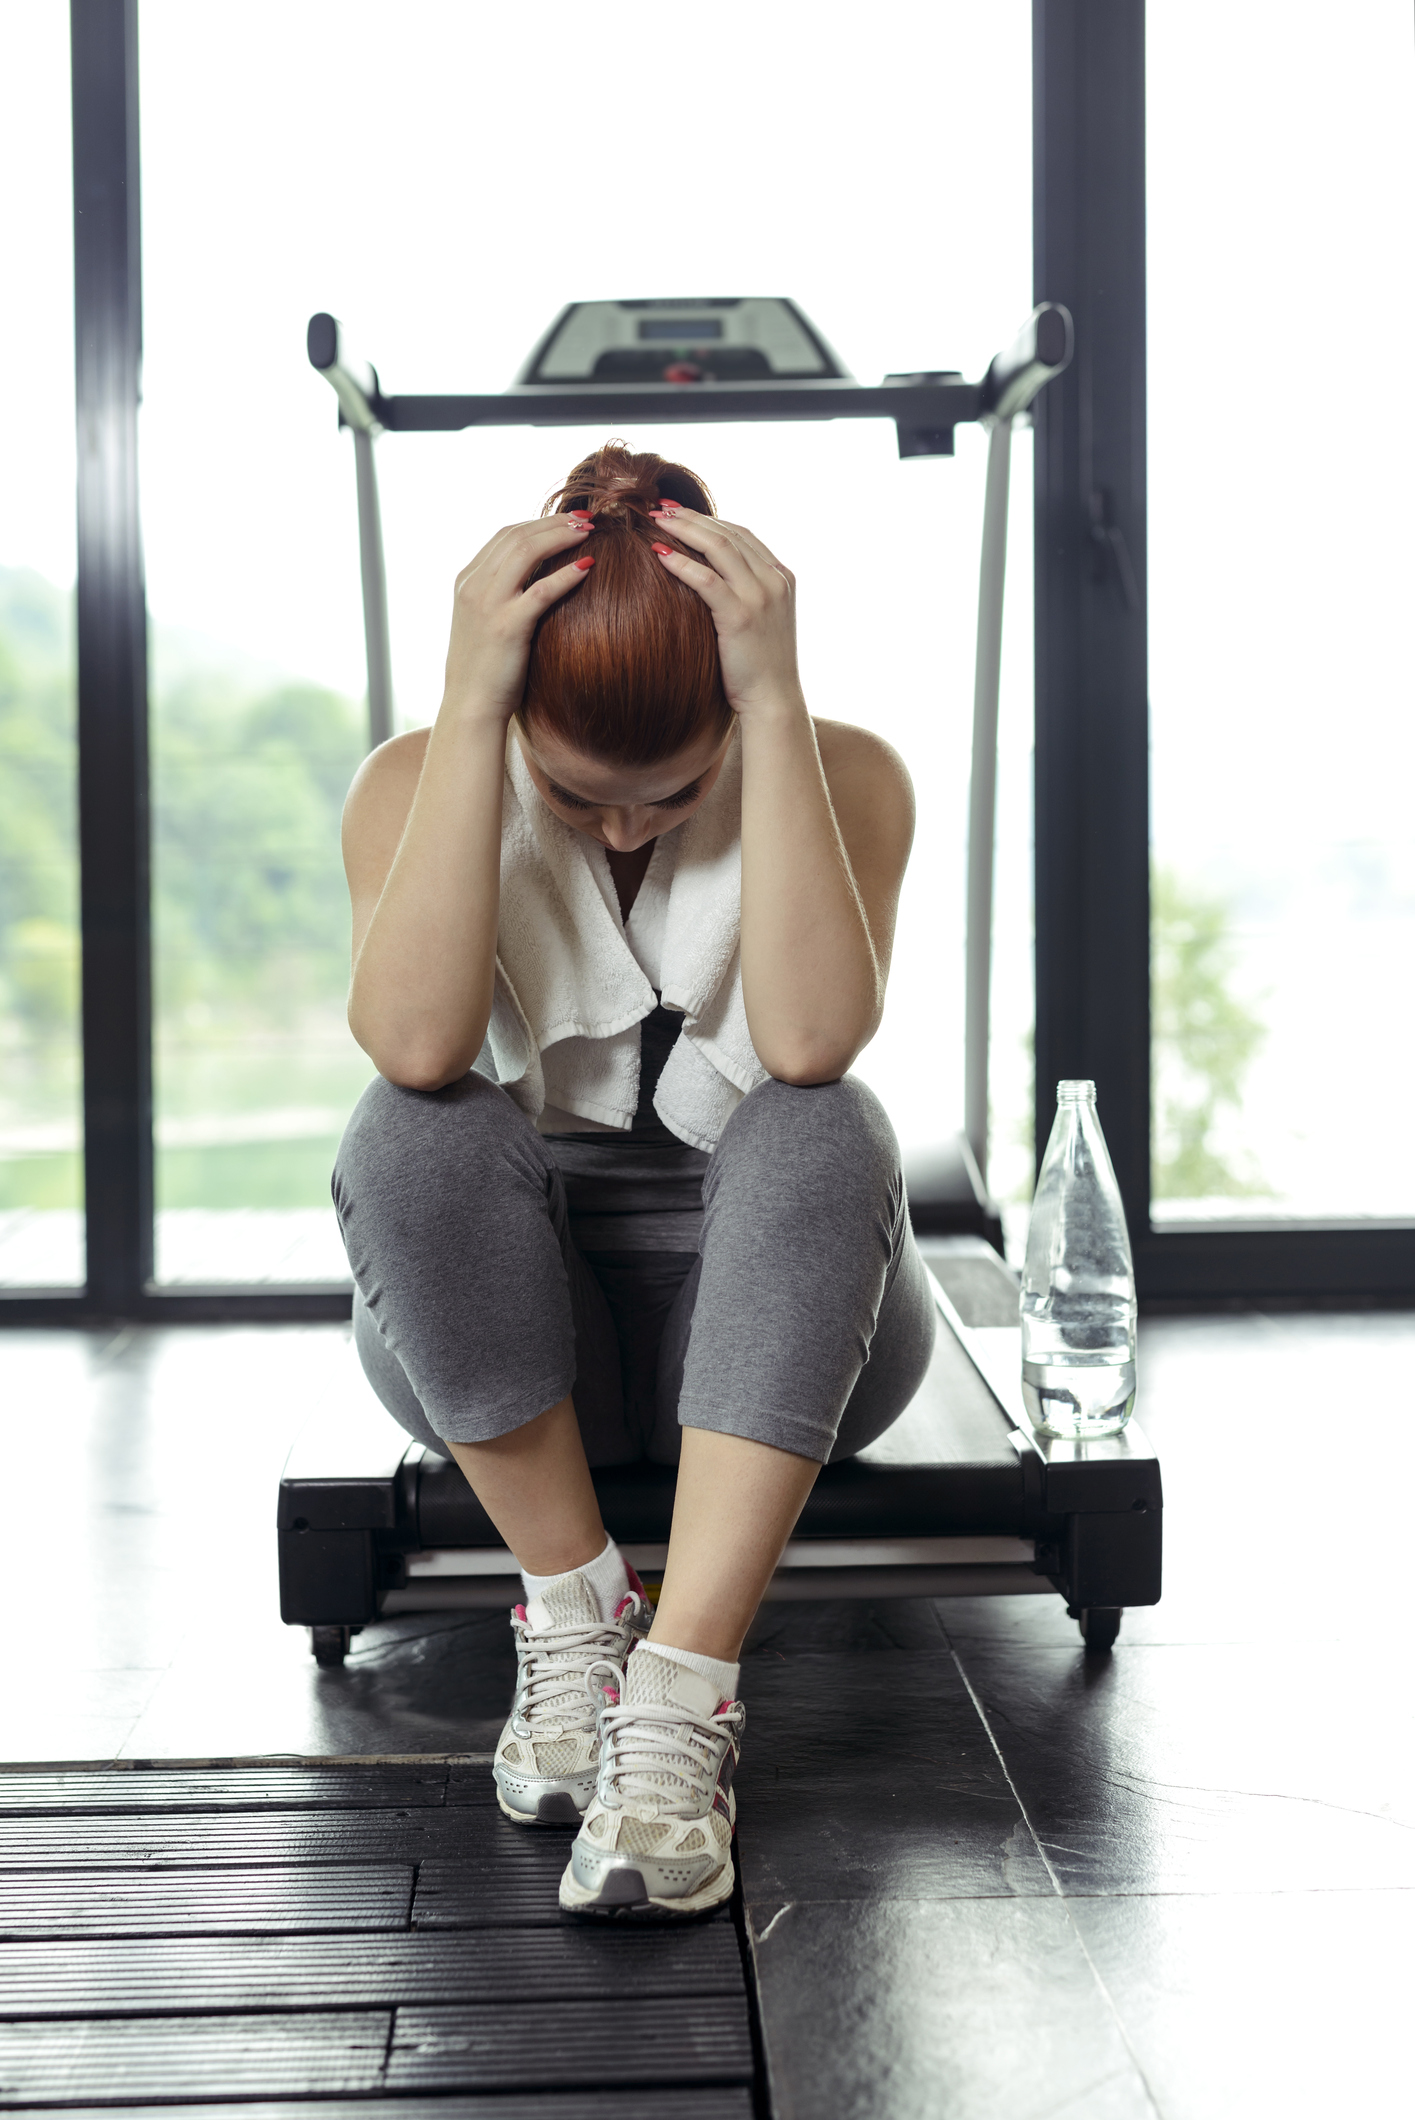 woman being tired after sport sitting on treadmill.